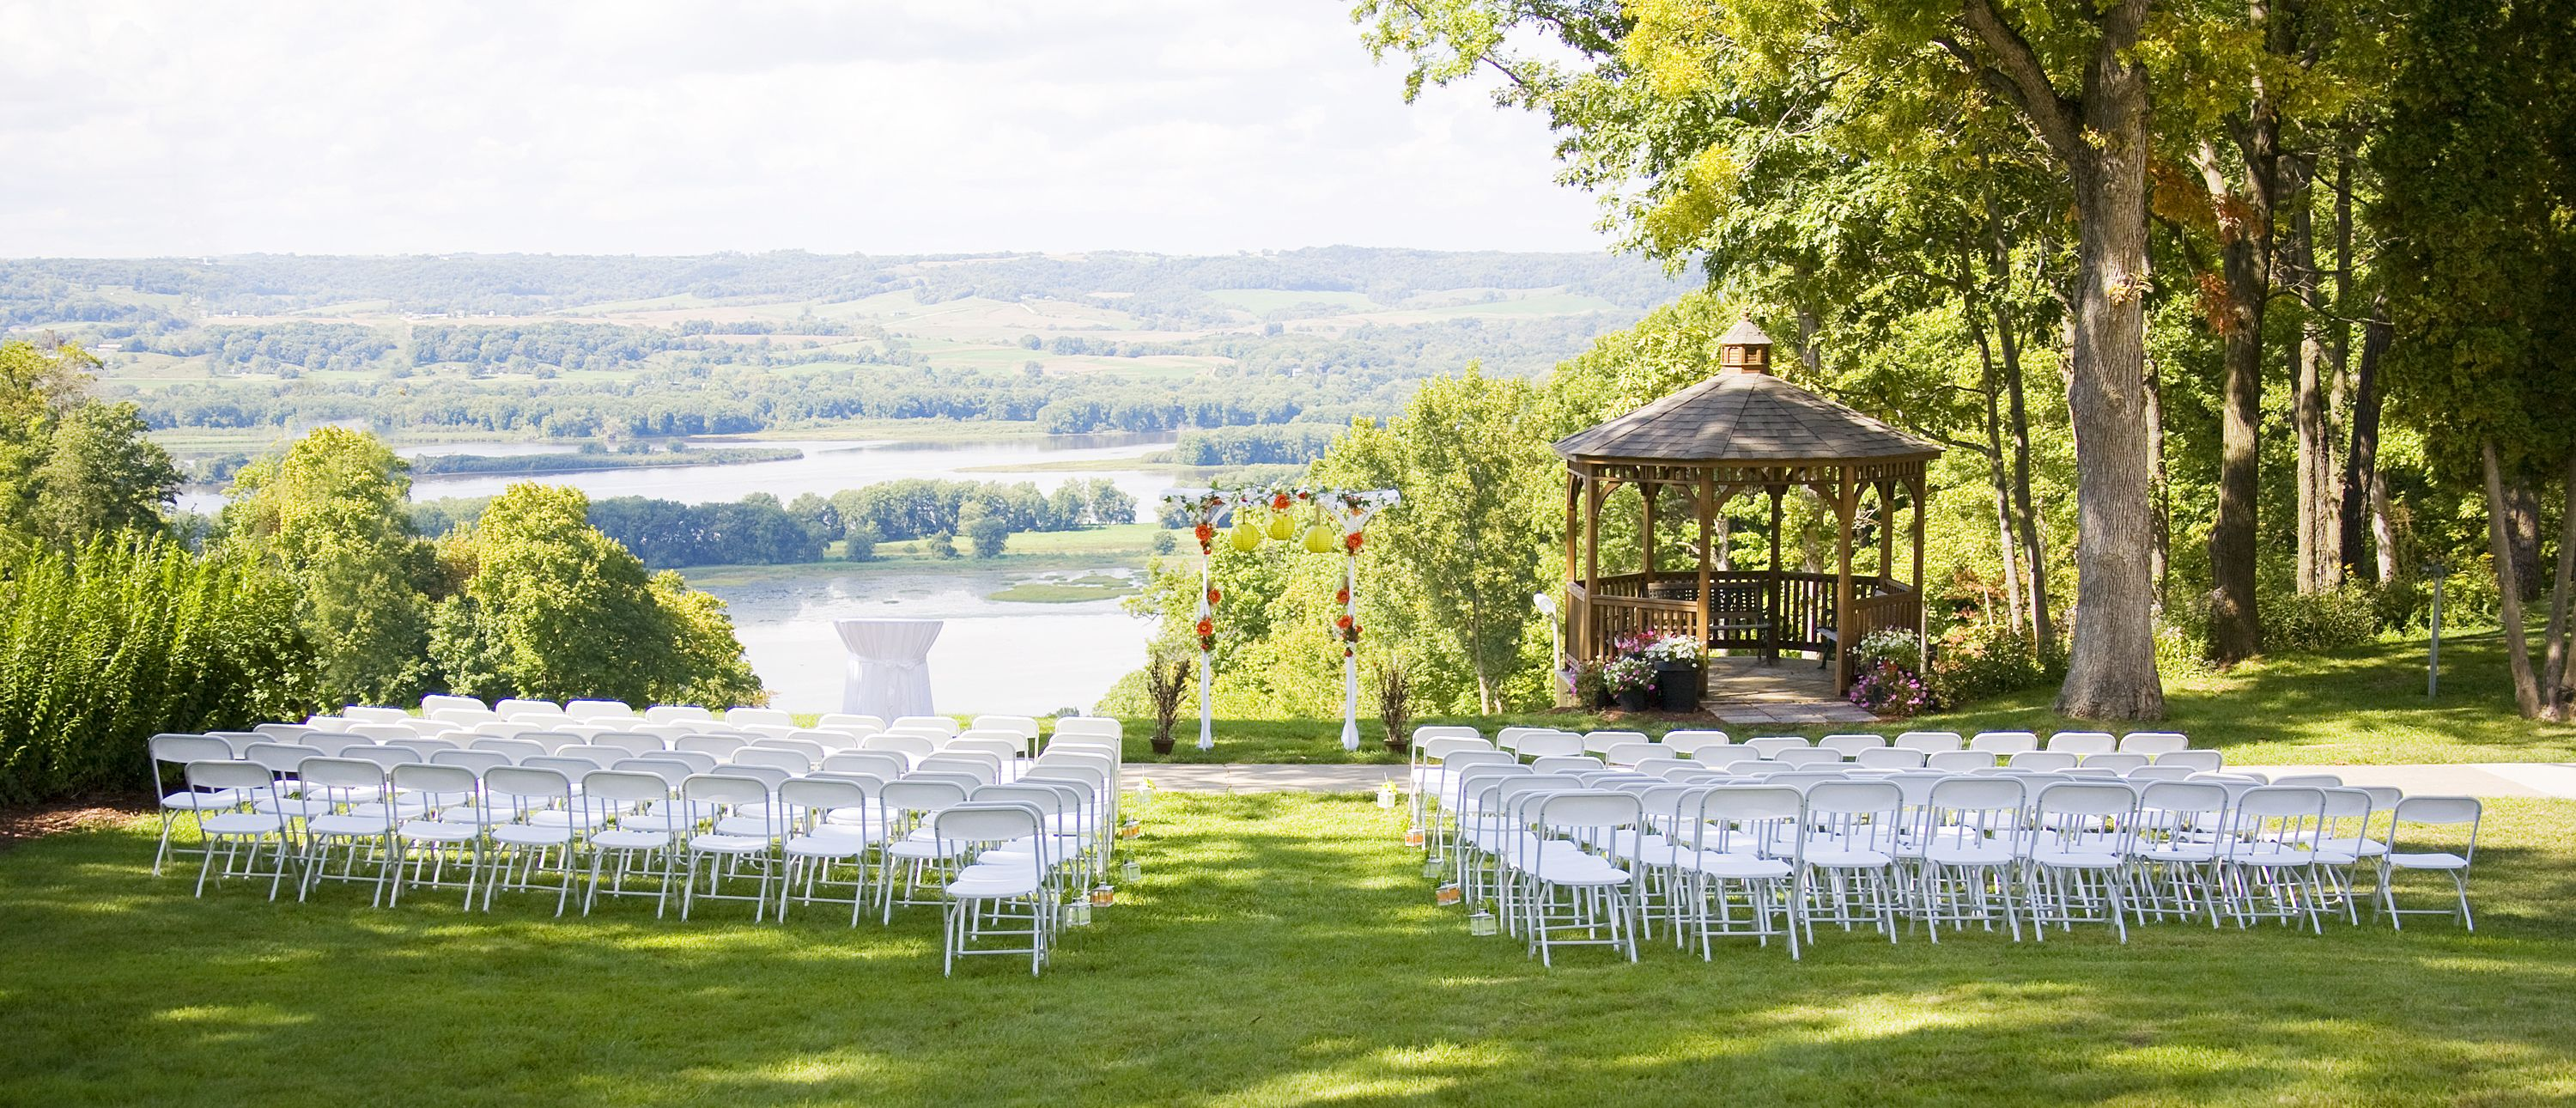 Galena Il Wedding Site Chestnut Mountain Resort Www Chestnutmtn